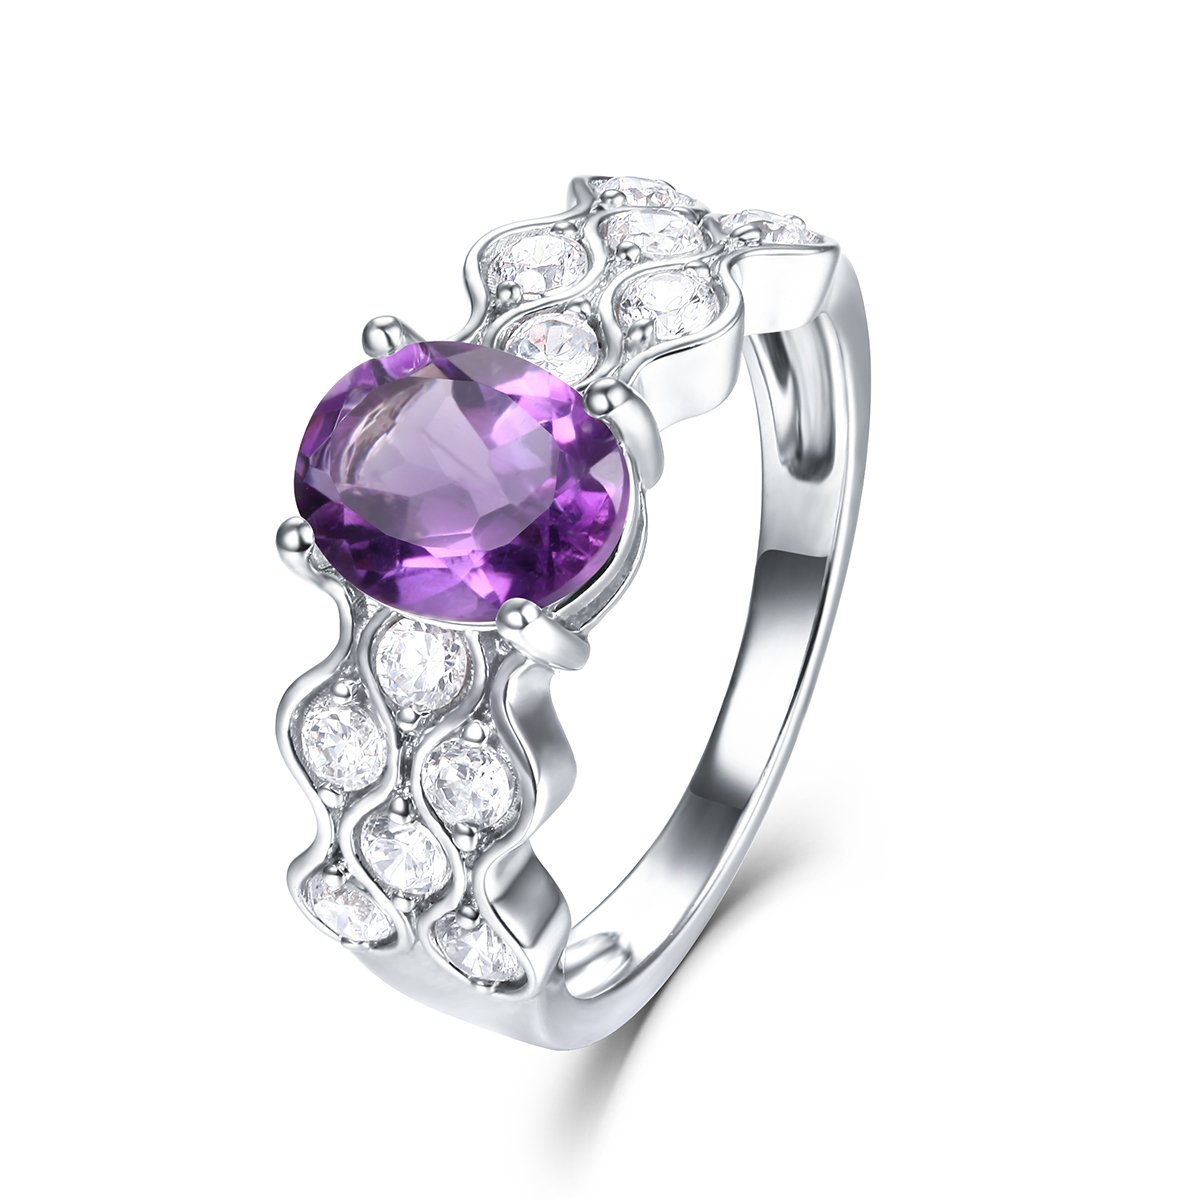 EL UNO 925 Sterling Silver February Birthstone Purple Amethyst Cubic Zirconia Promise Rings for Her Women Engagement Wedding Bands Rings